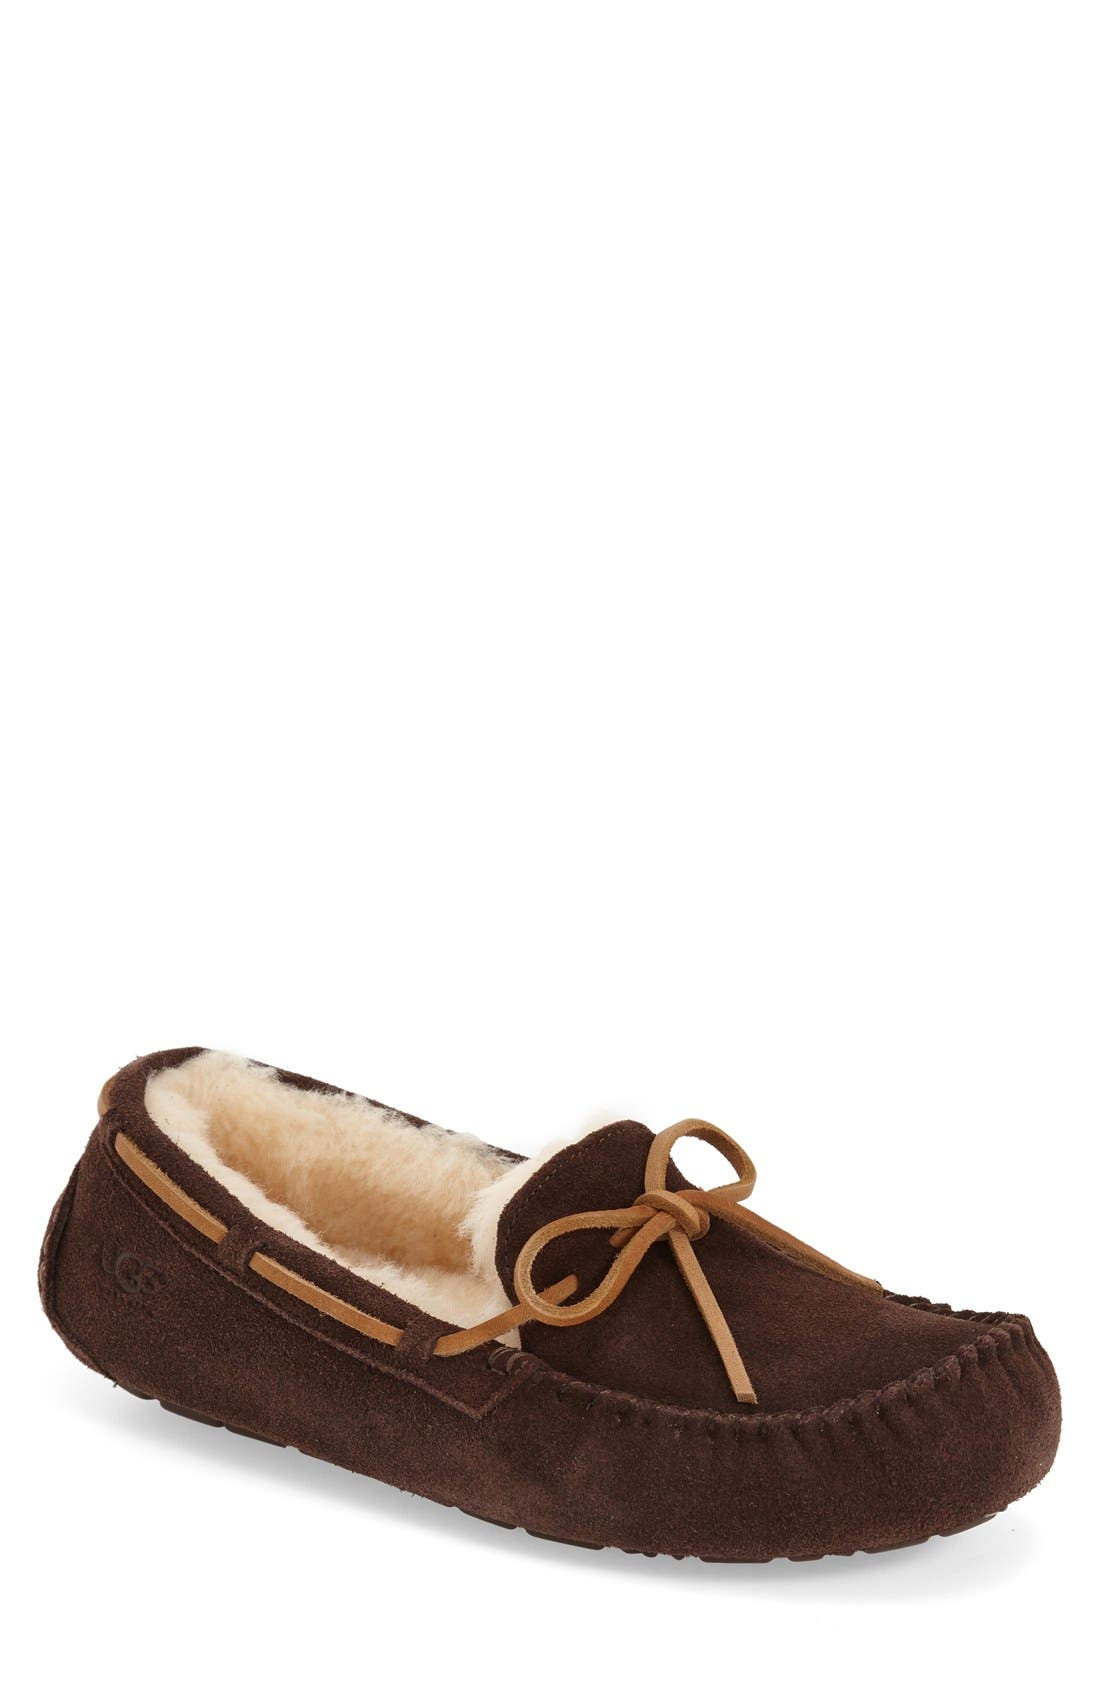 UGG<SUP>®</SUP> 'Olsen' Moccasin Slipper, Main, color, ESPRESSO